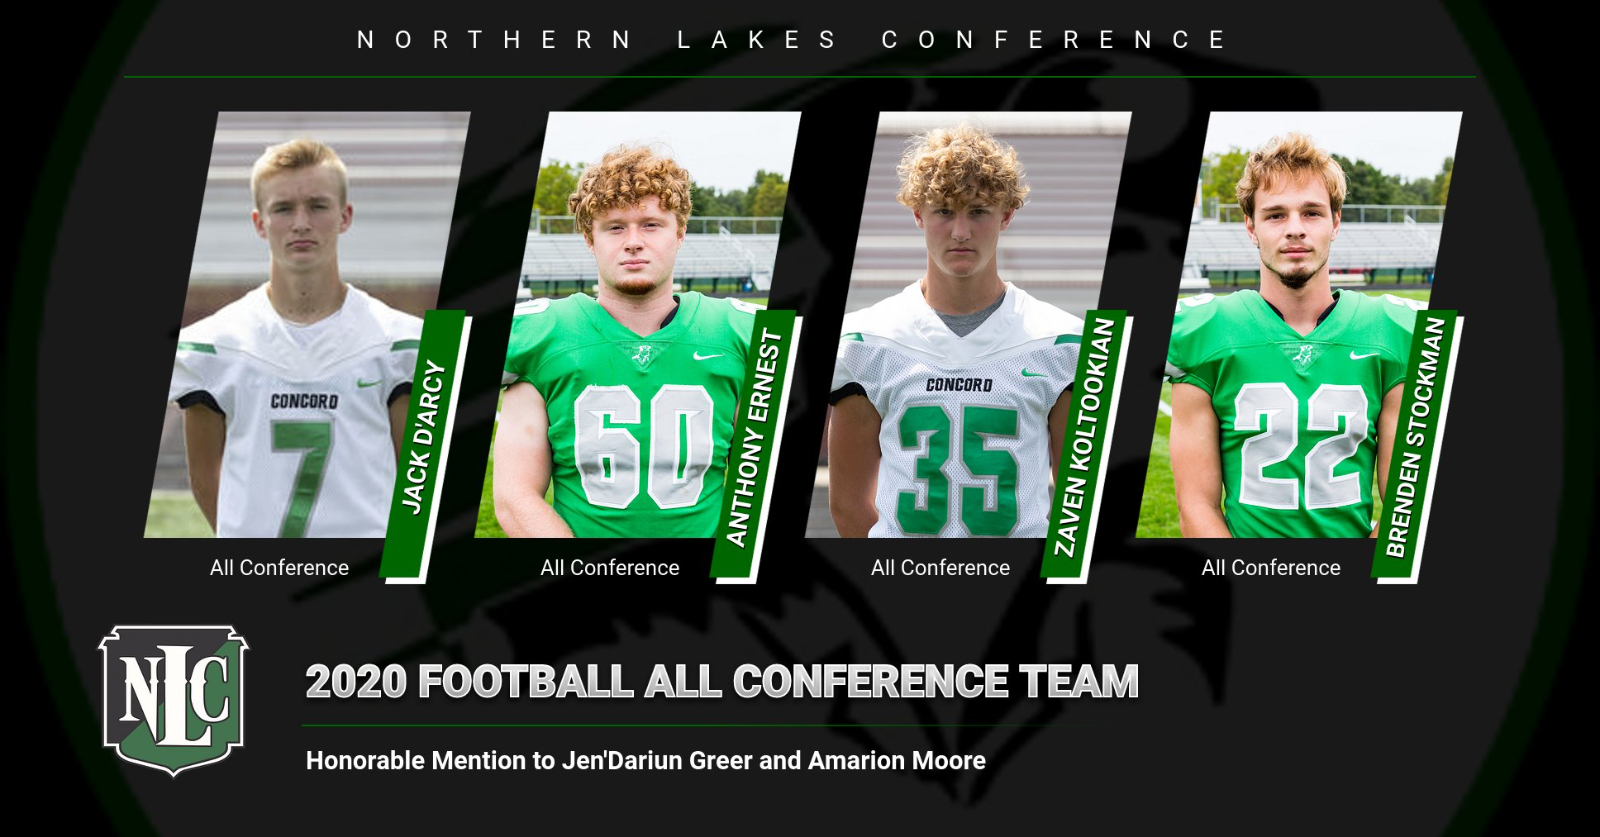 2020 Football All Conference Team